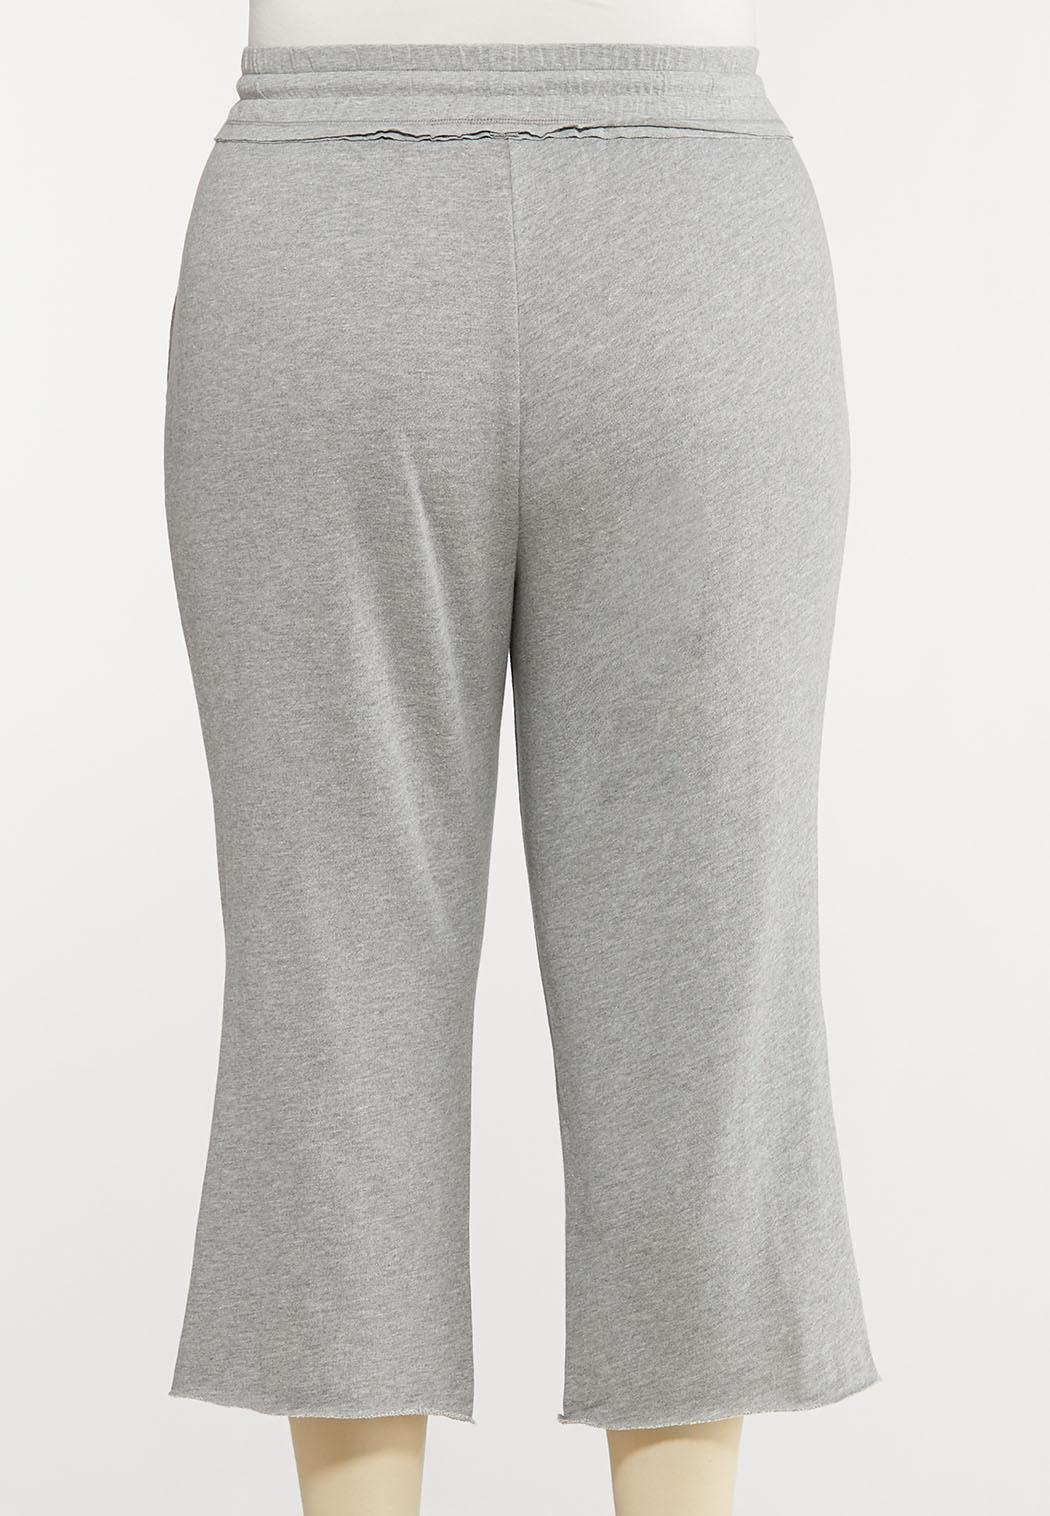 Plus Size Gray Cropped Athleisure Pants (Item #44153121)